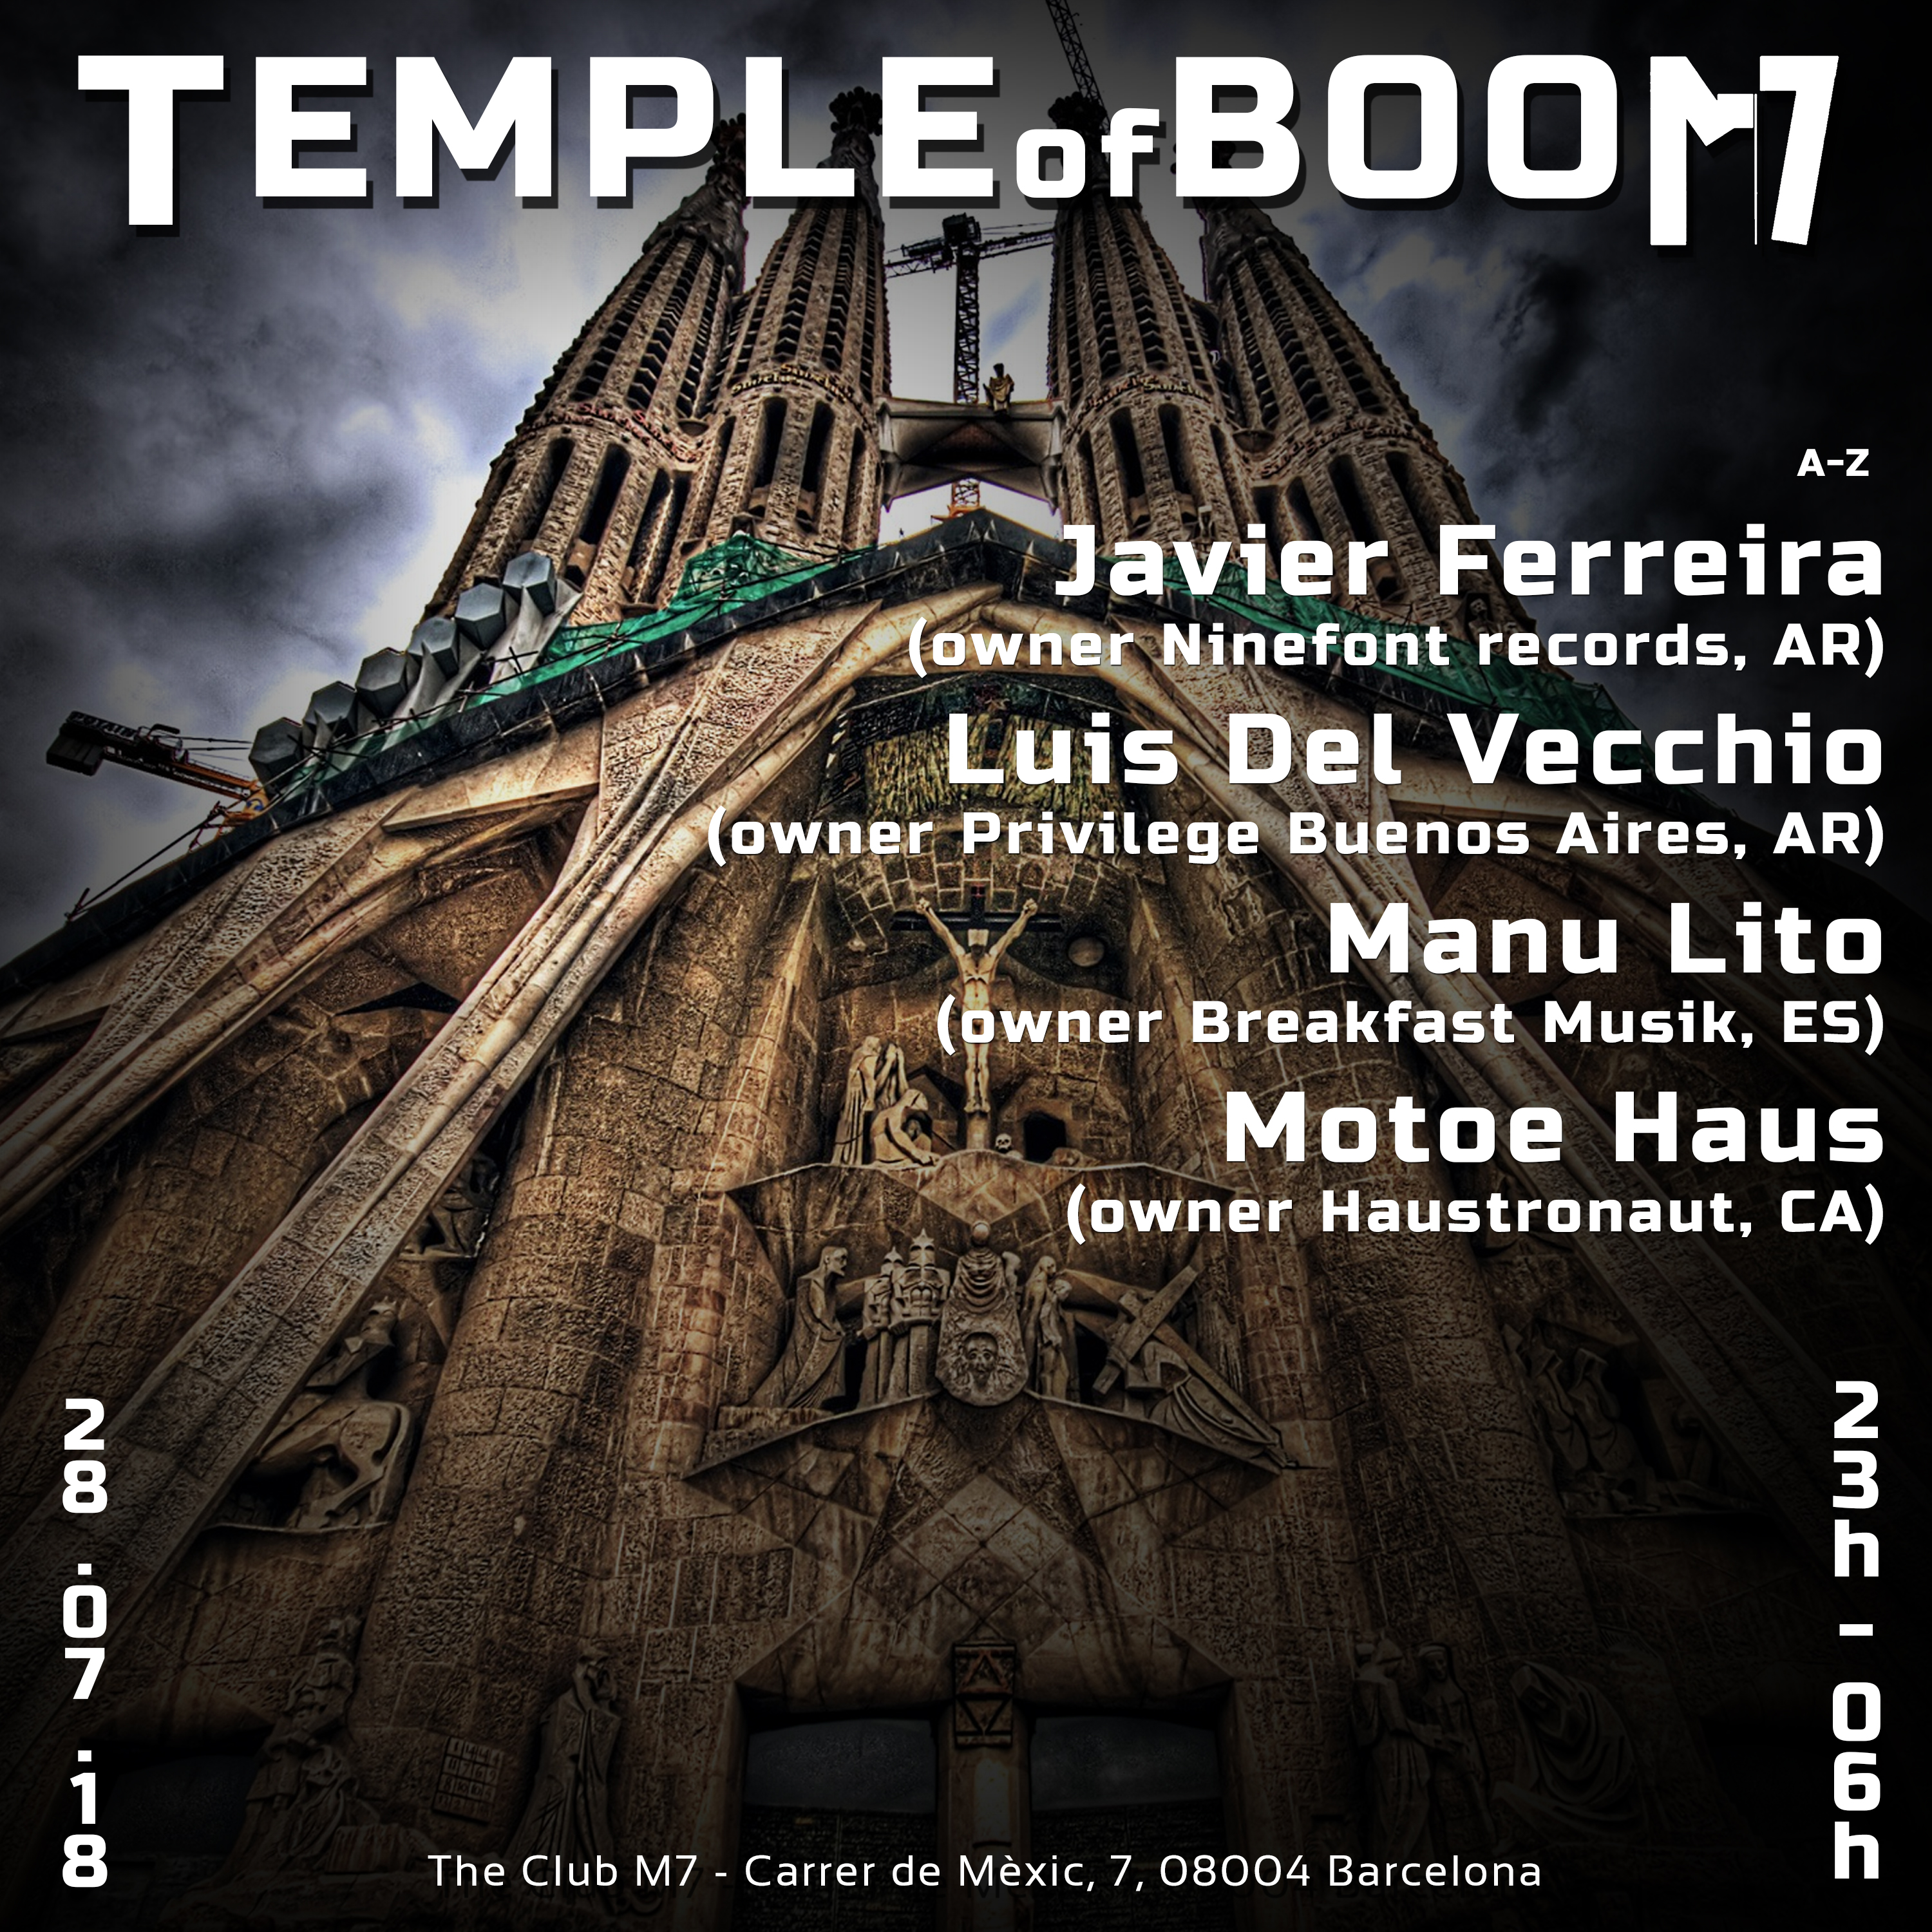 temple-of-boom-ig